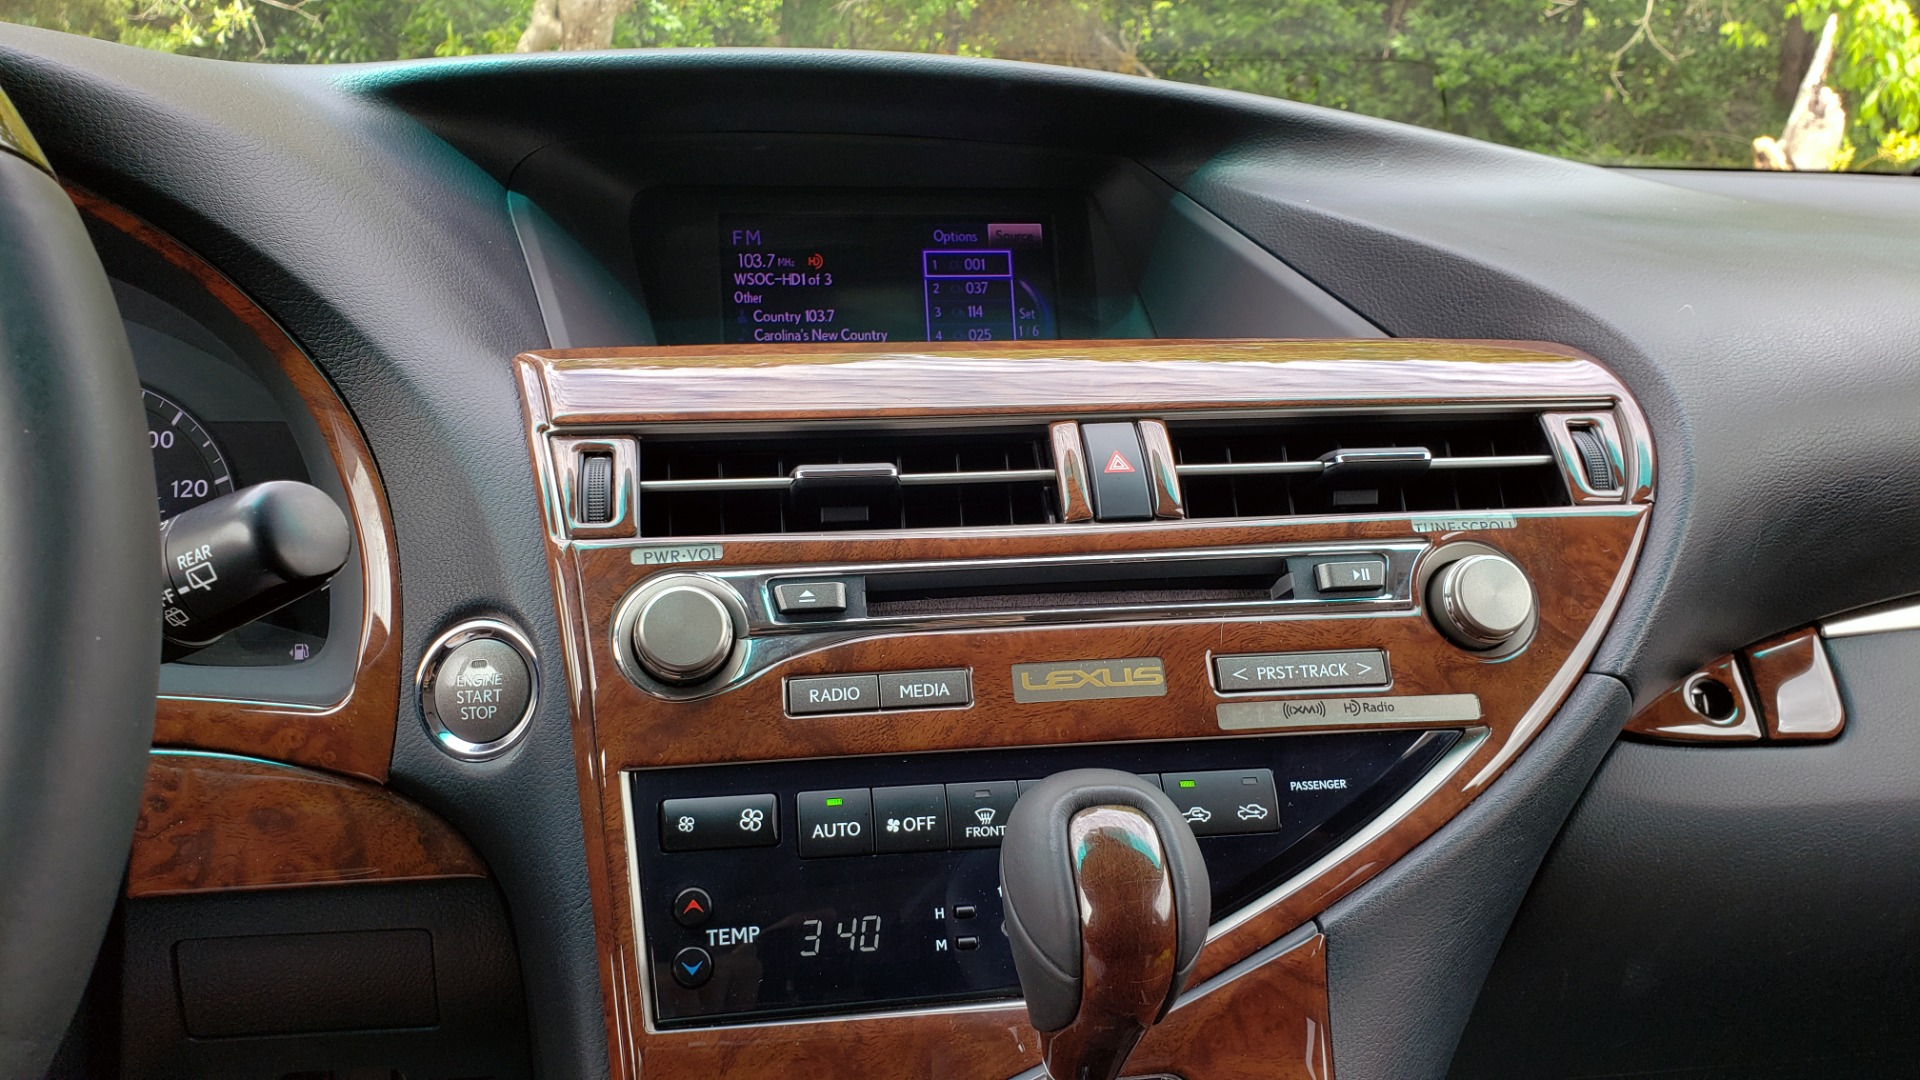 Used 2013 Lexus RX 350 PREMIUM PKG / SUNROOF / BSM / PARK ASST / REARVIEW for sale Sold at Formula Imports in Charlotte NC 28227 44